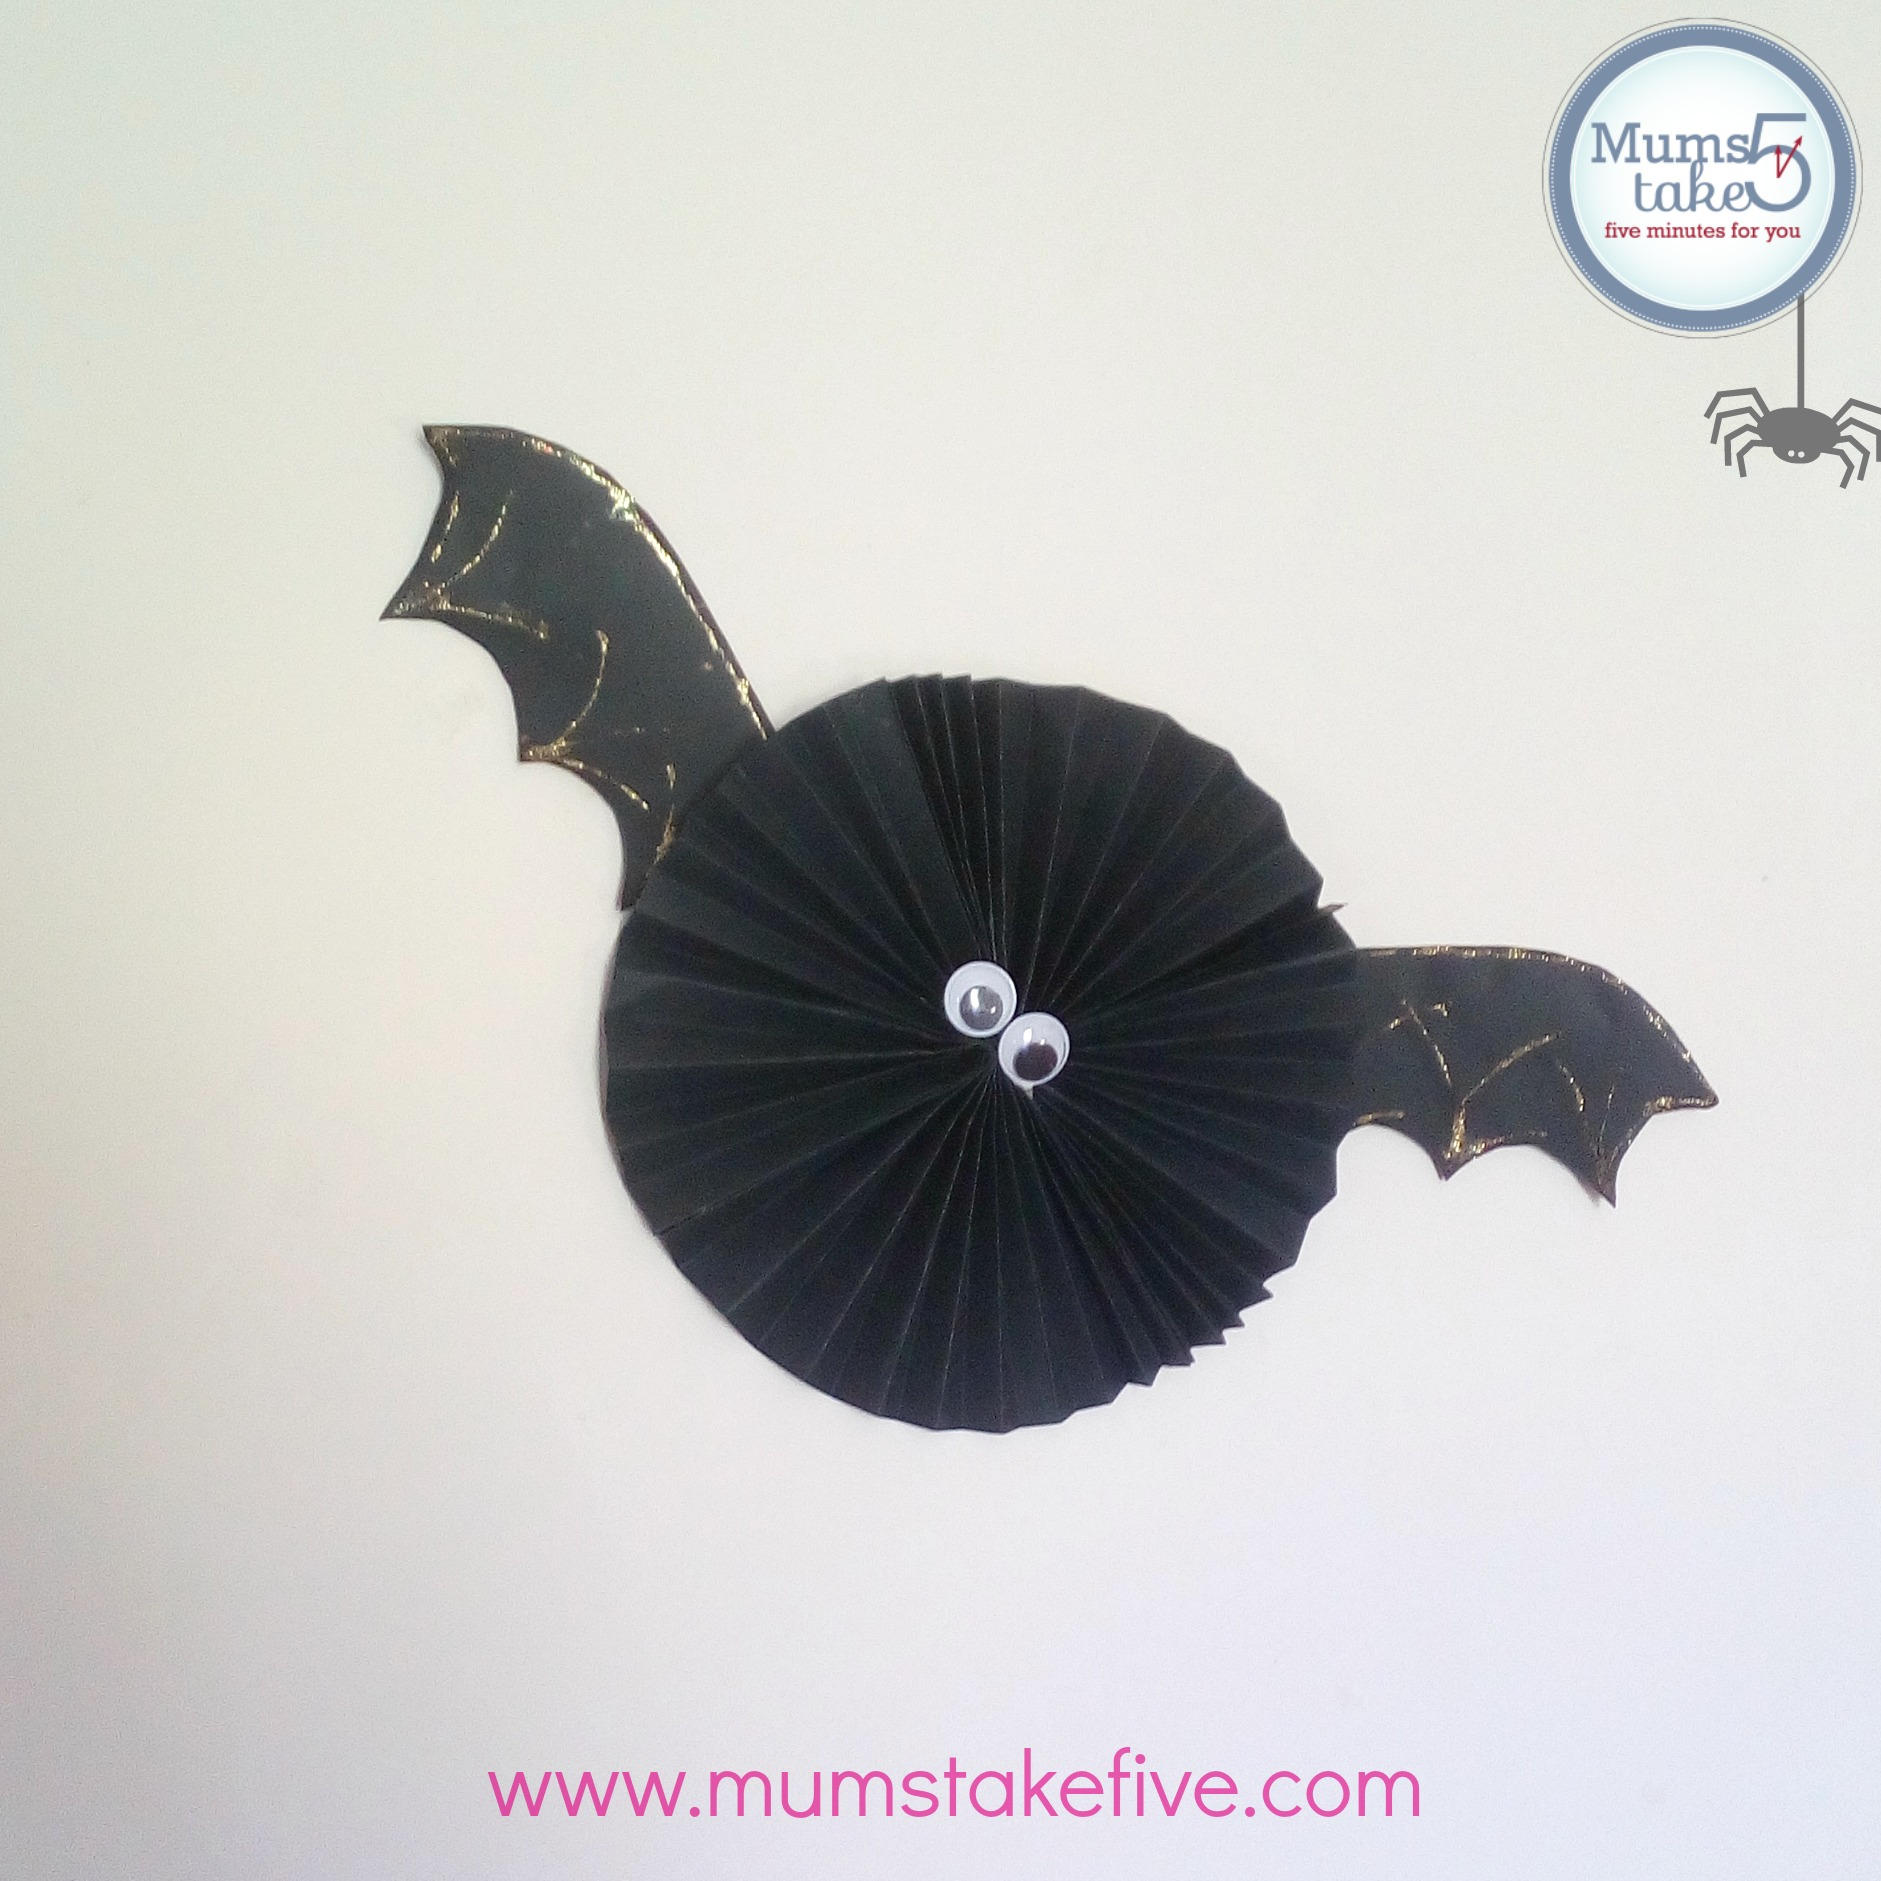 http://www.mumstakefive.com/index.php/craft-learn-play/halloween/658-halloween-paper-bats-craft